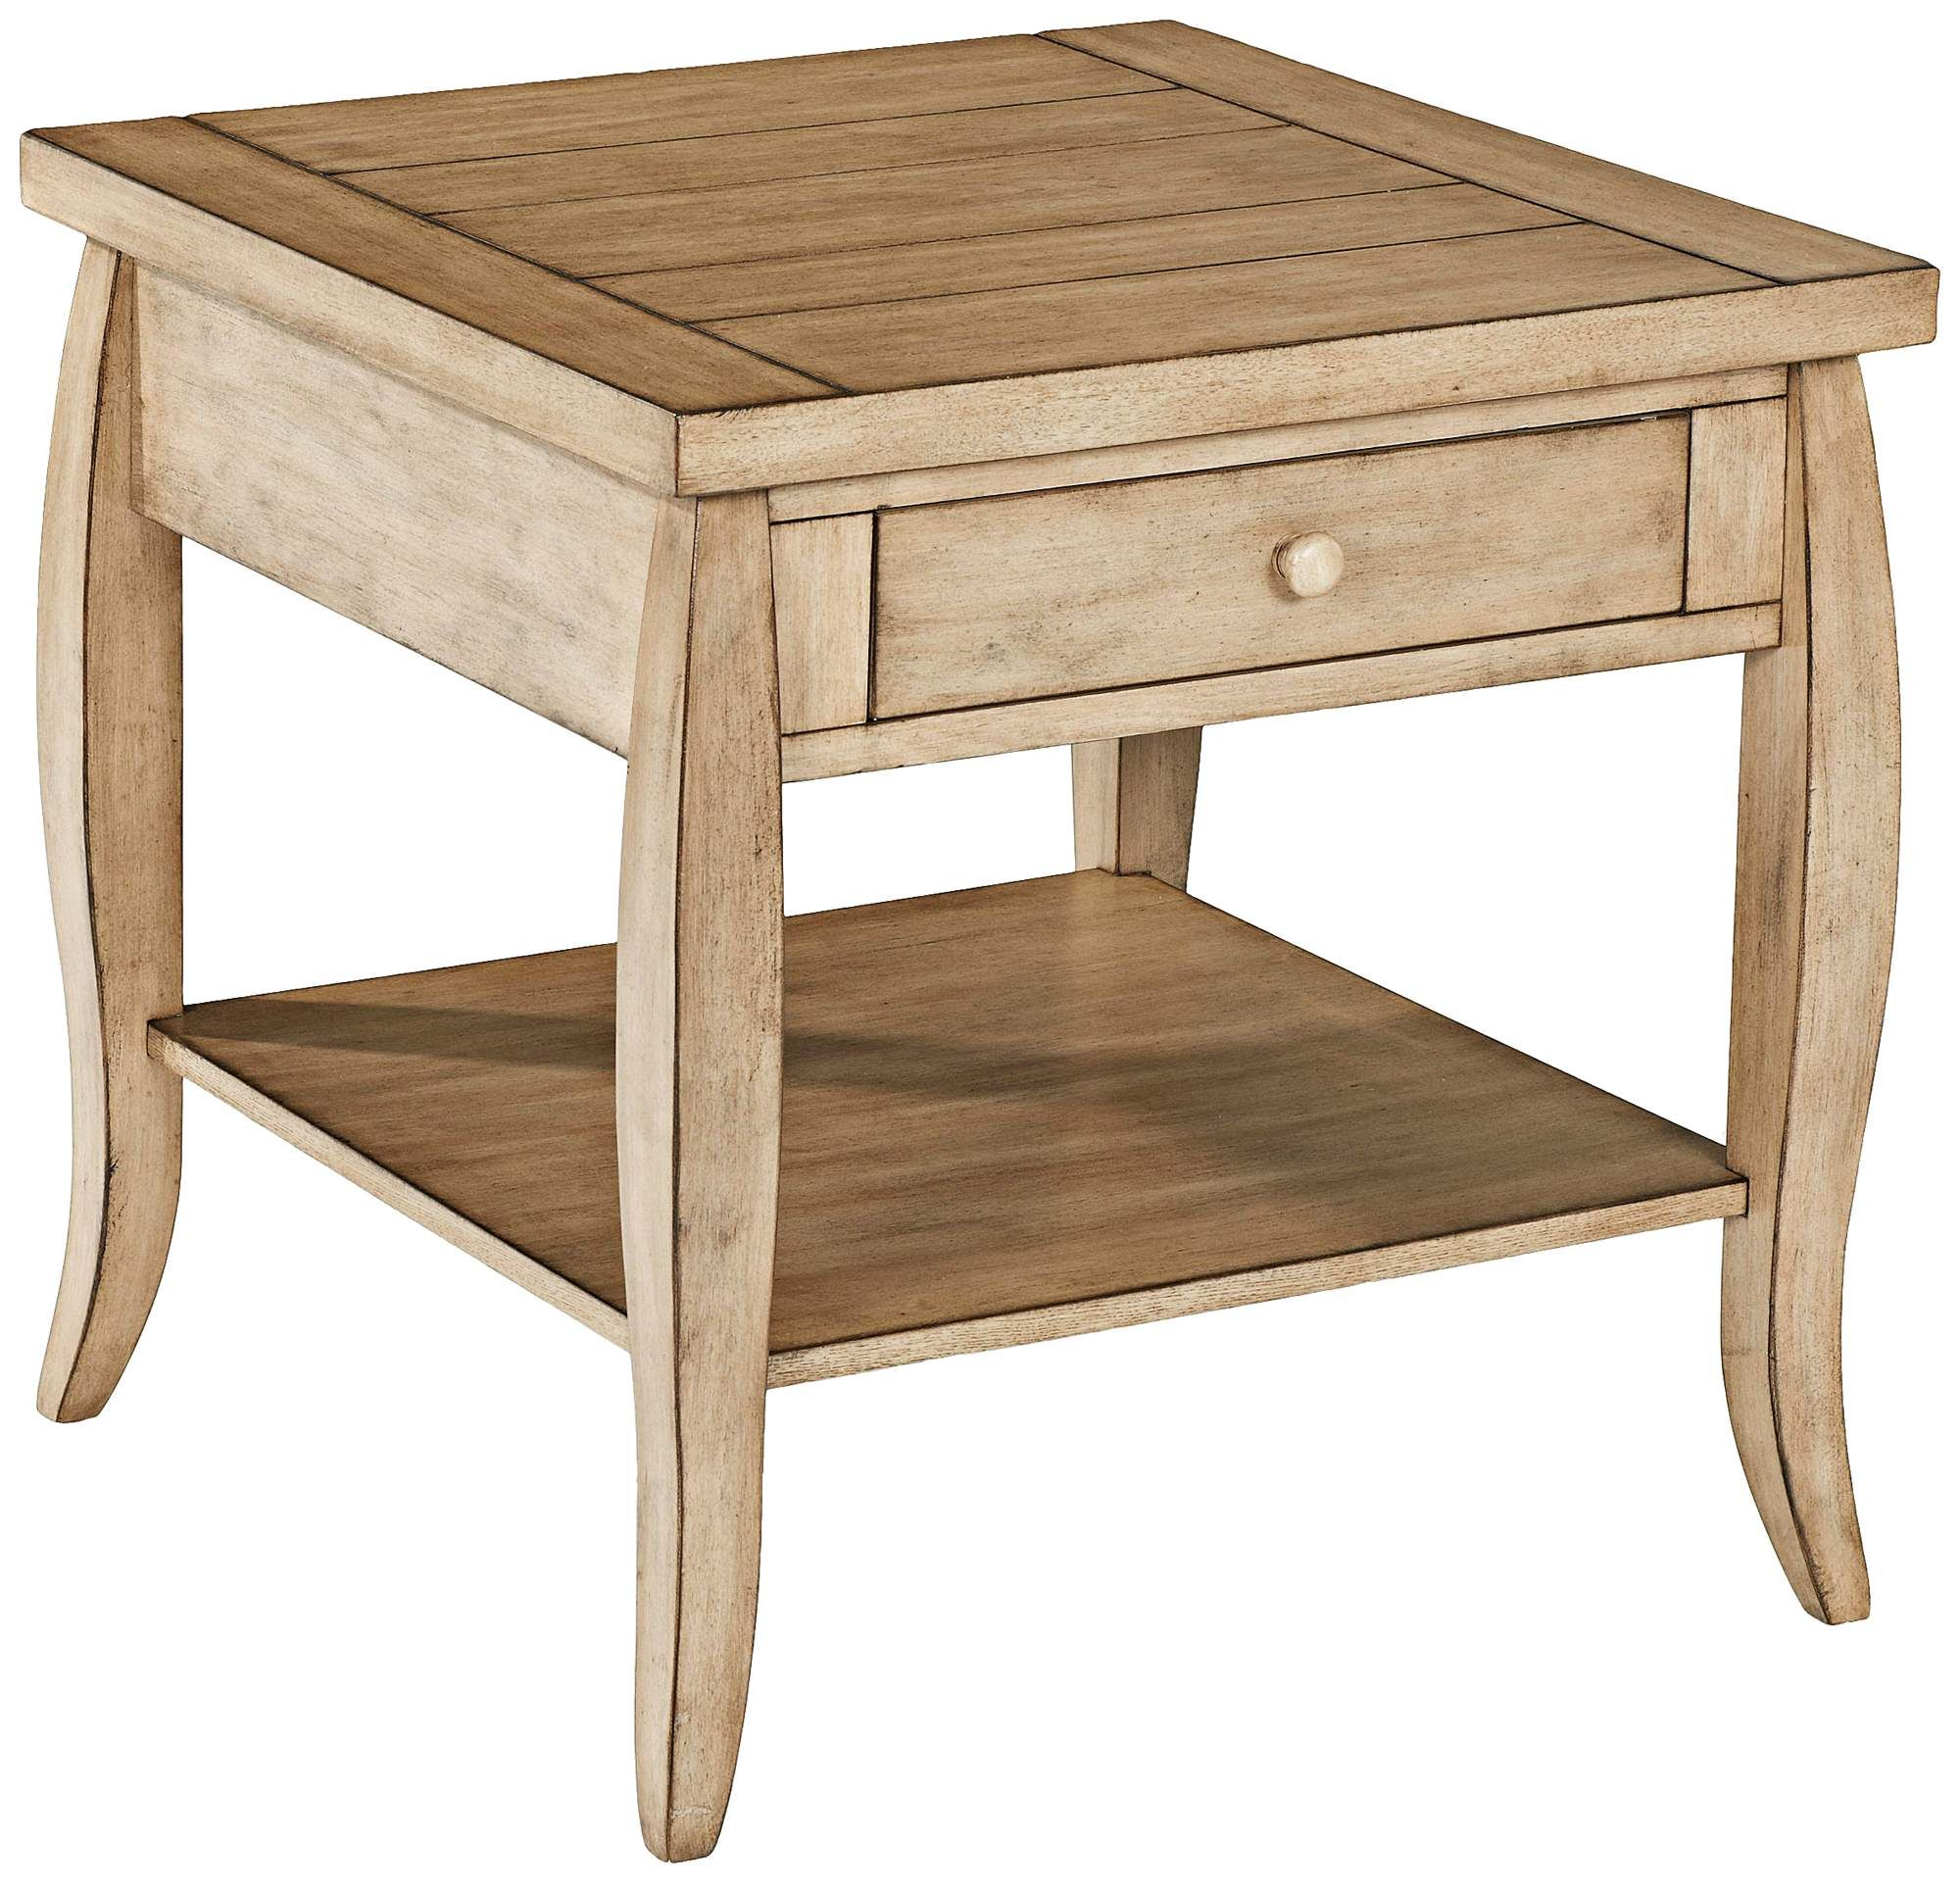 Glen Valley 24 Inch Wide Square End Table By Klaussner In 2020 Klaussner Furniture Furniture End Tables